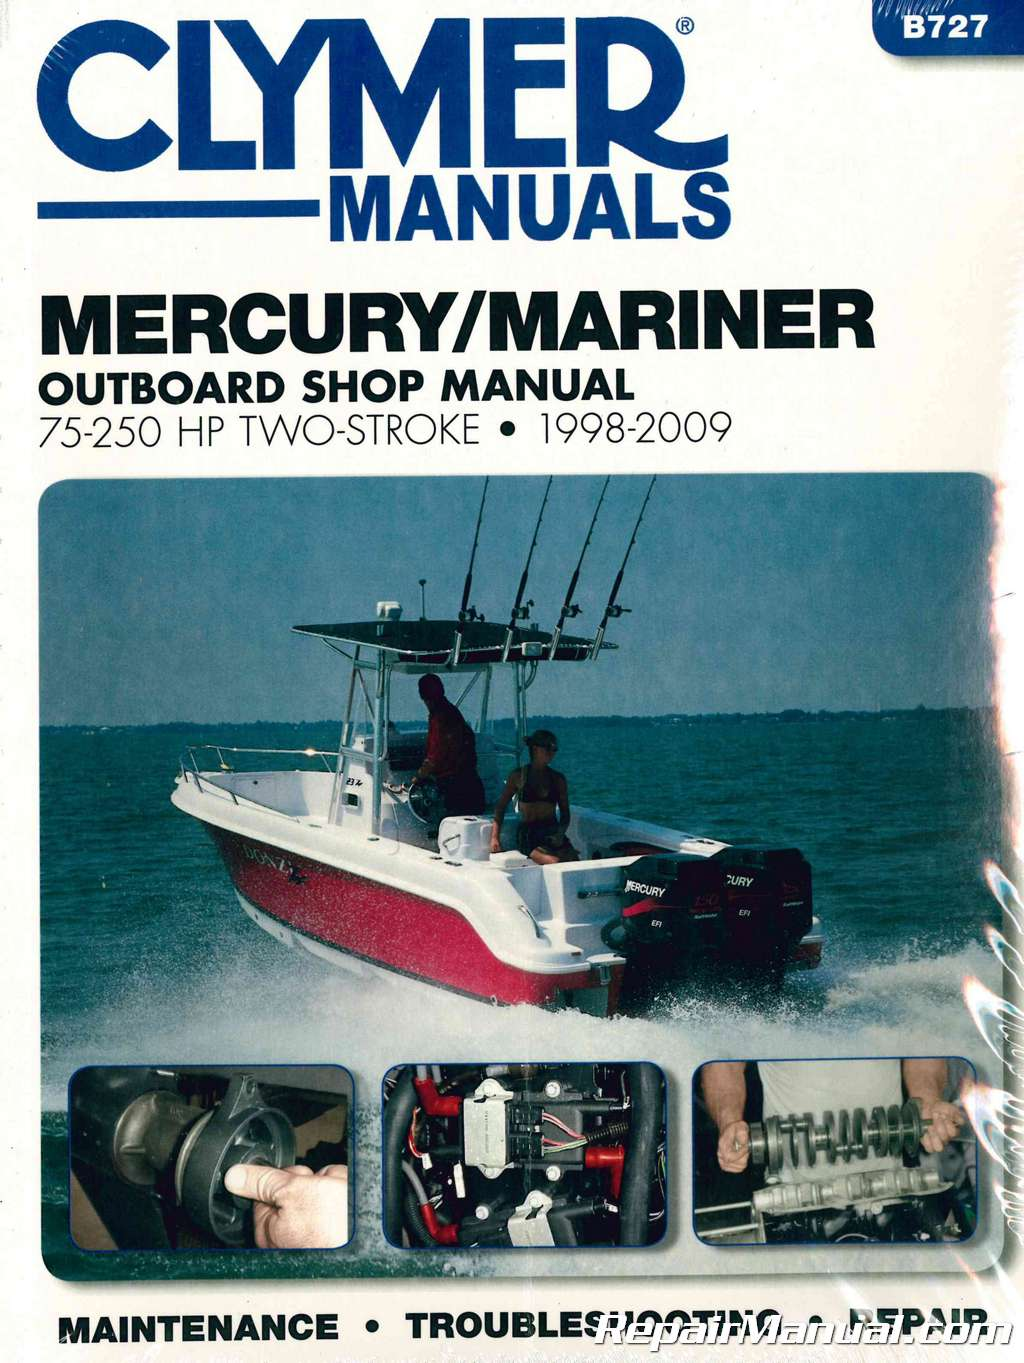 1998-2009 Mercury-Mariner 75-250 hp Two Stroke Outboard Boat Engine Repair Manual by Clymer